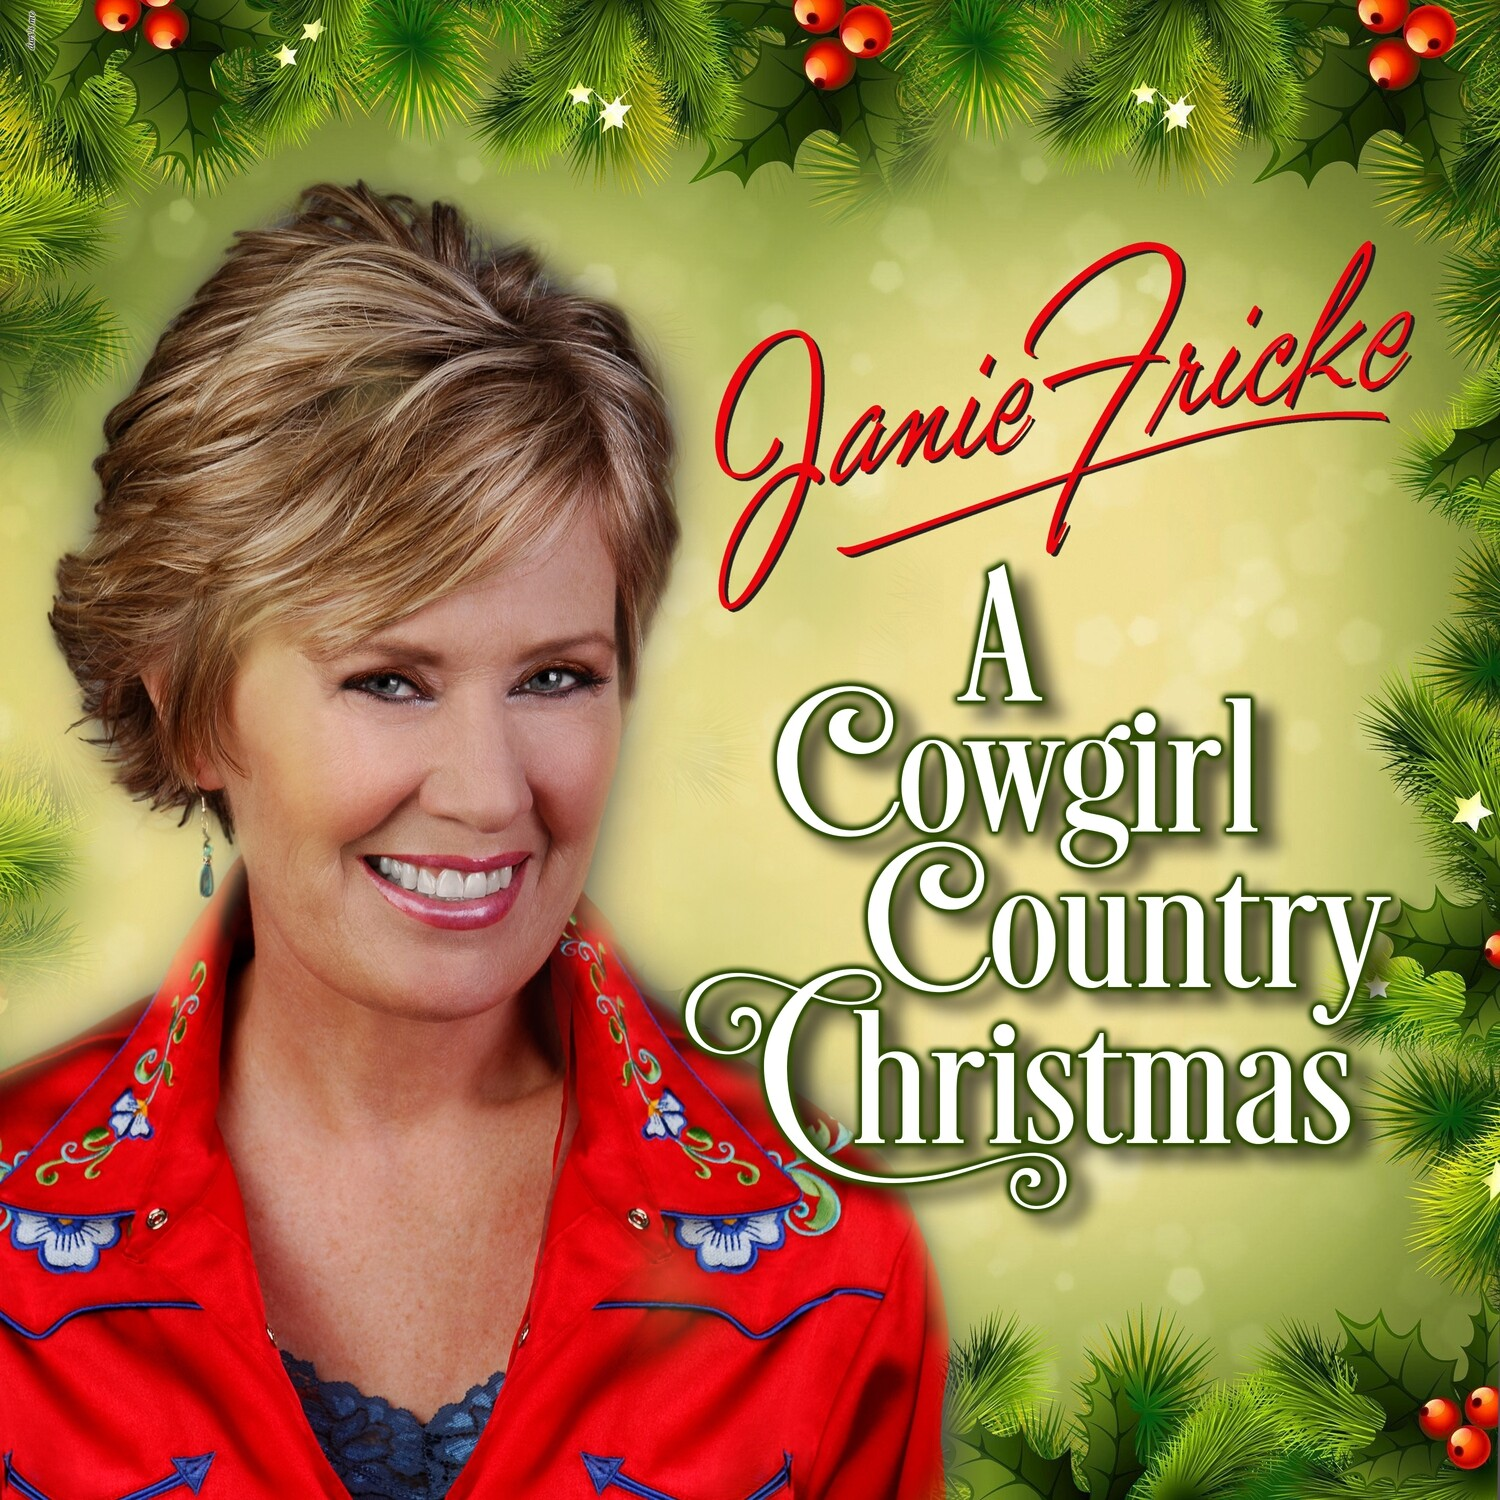 A Cowgirl Country Christmas - Autographed CD